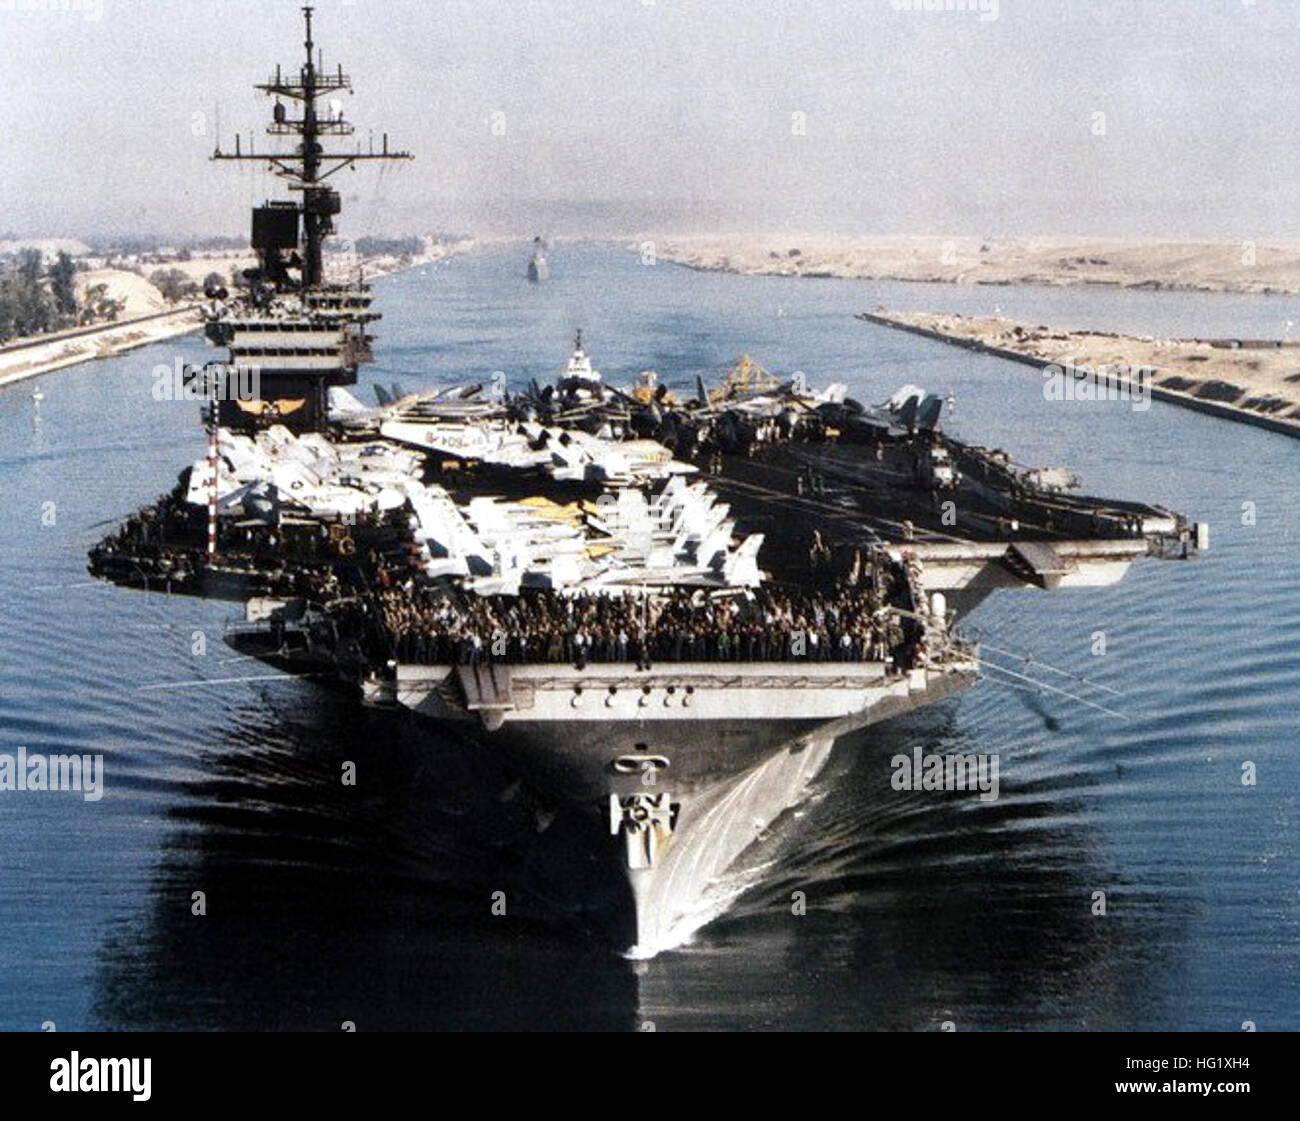 uss america  cv-66  in the suez canal 1991  bow view stock photo  130349888